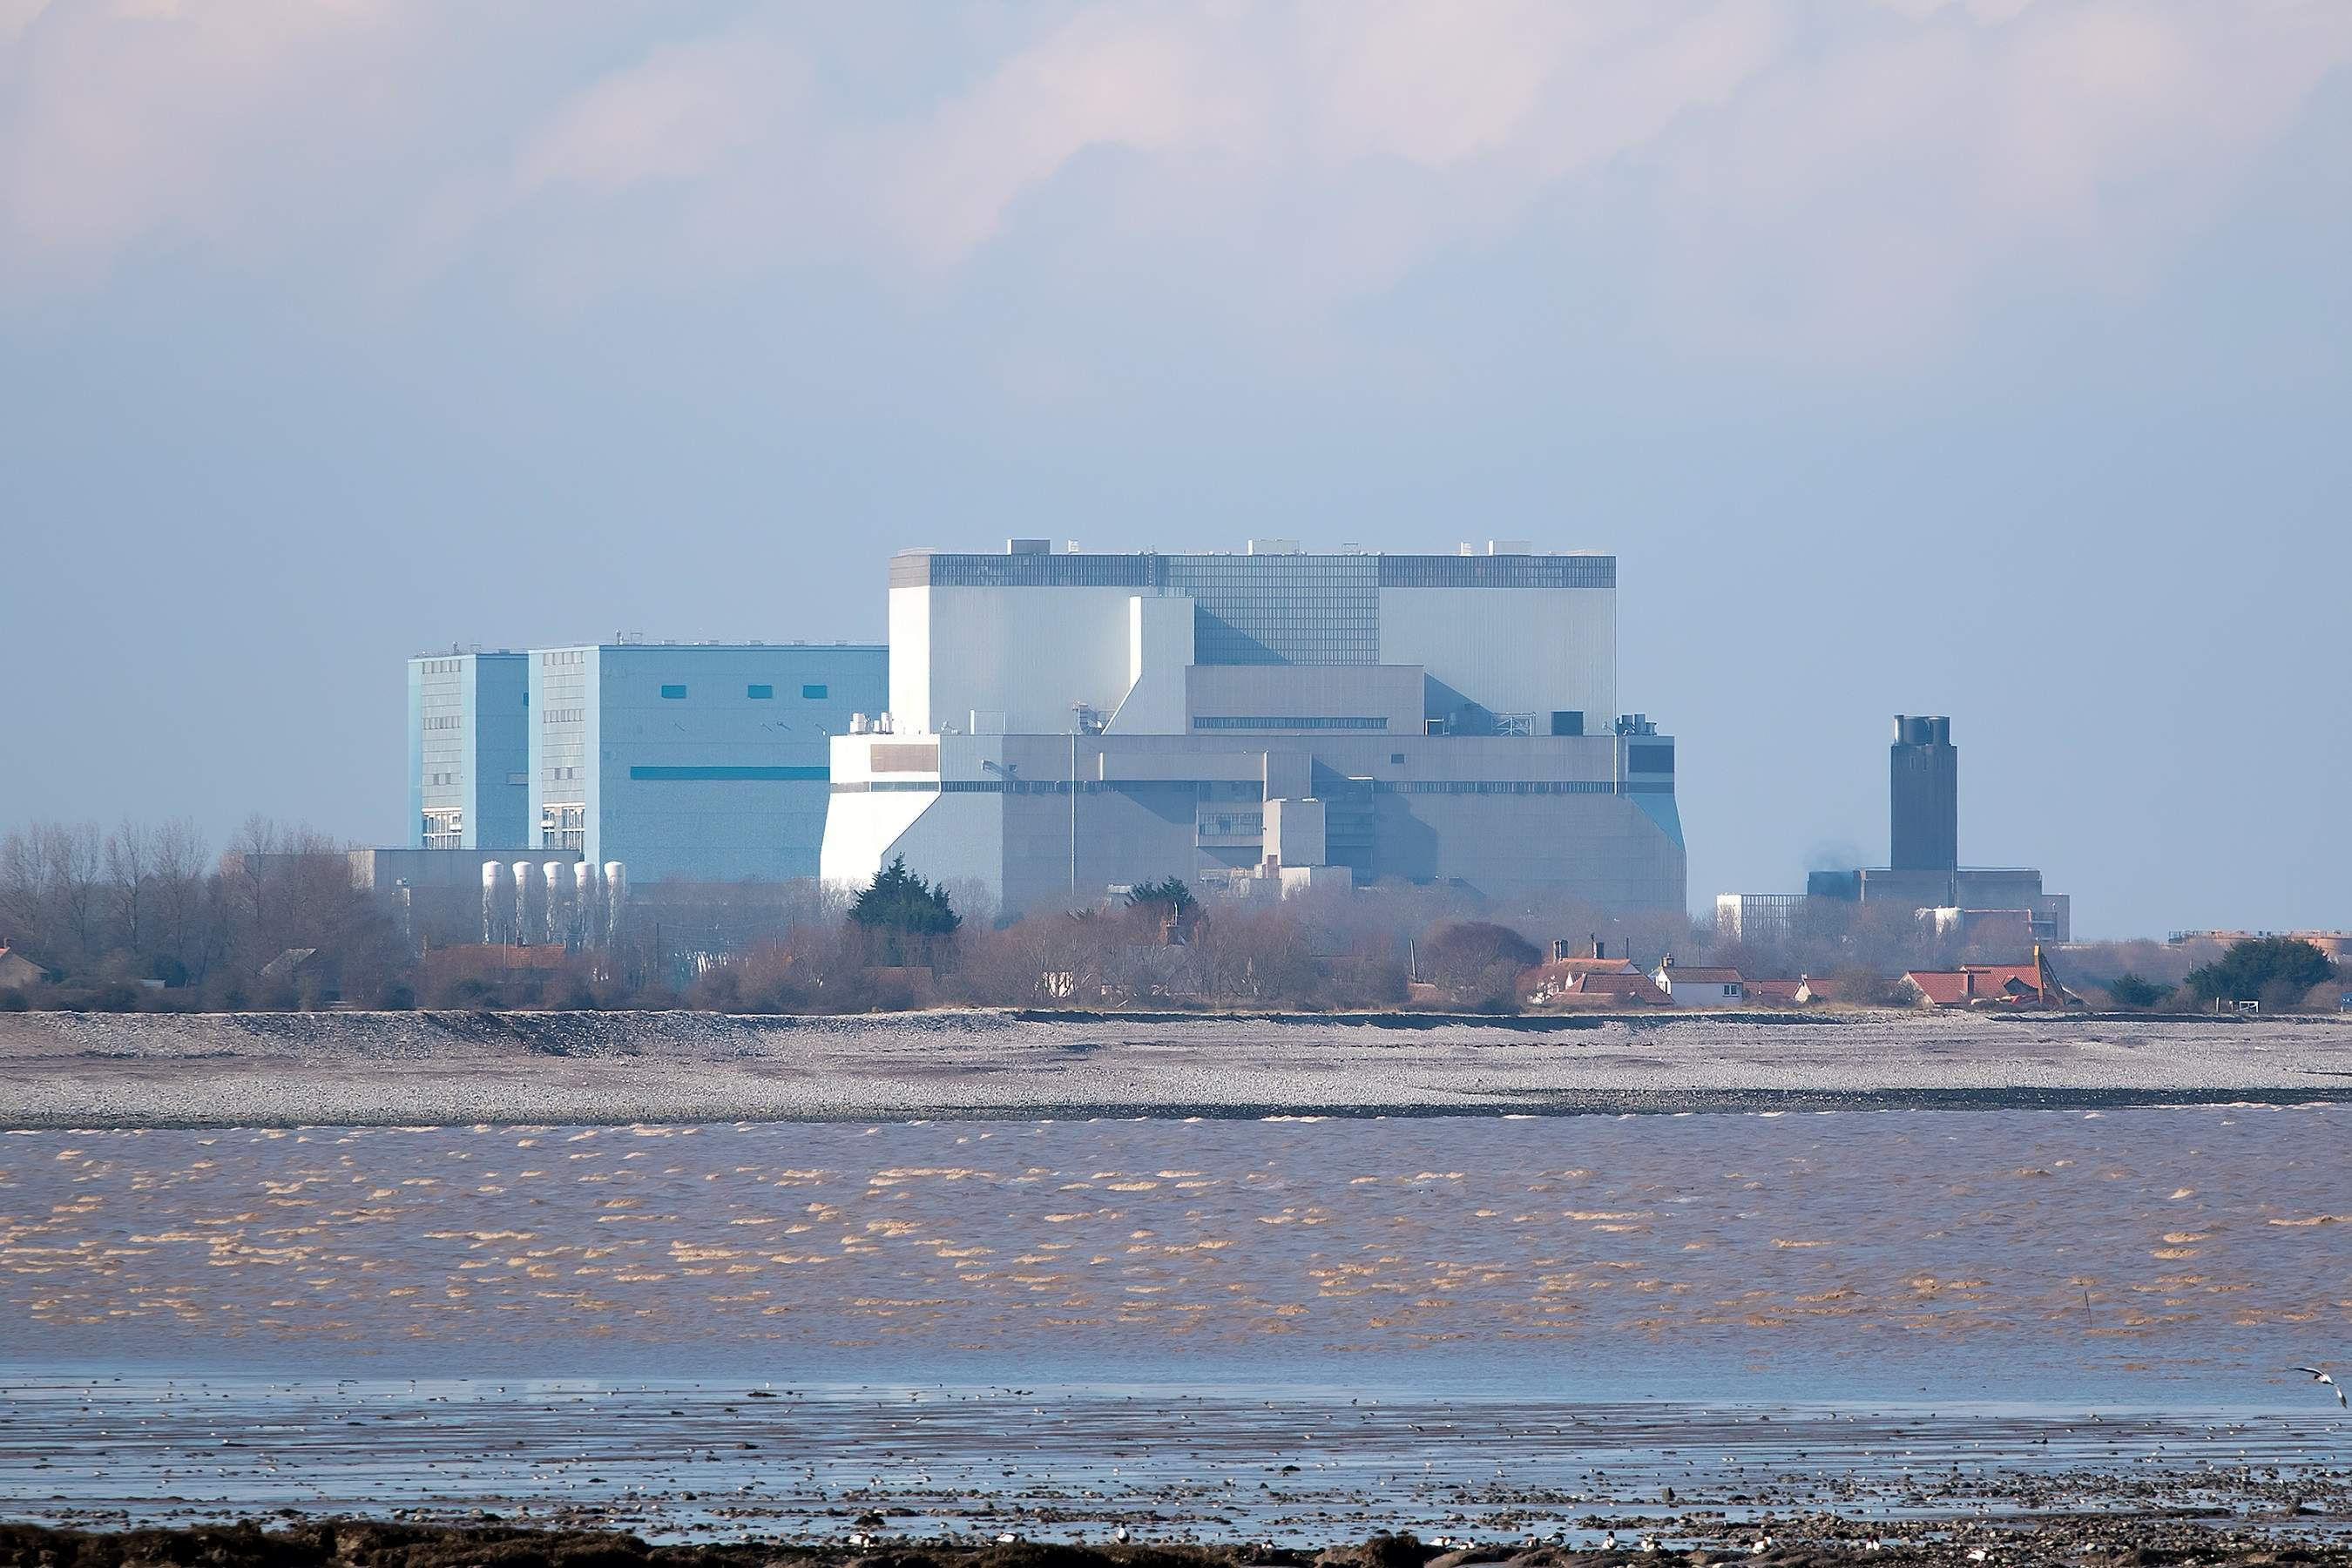 The UK's nuclear industry is at risk because of Brexit, warns MPs